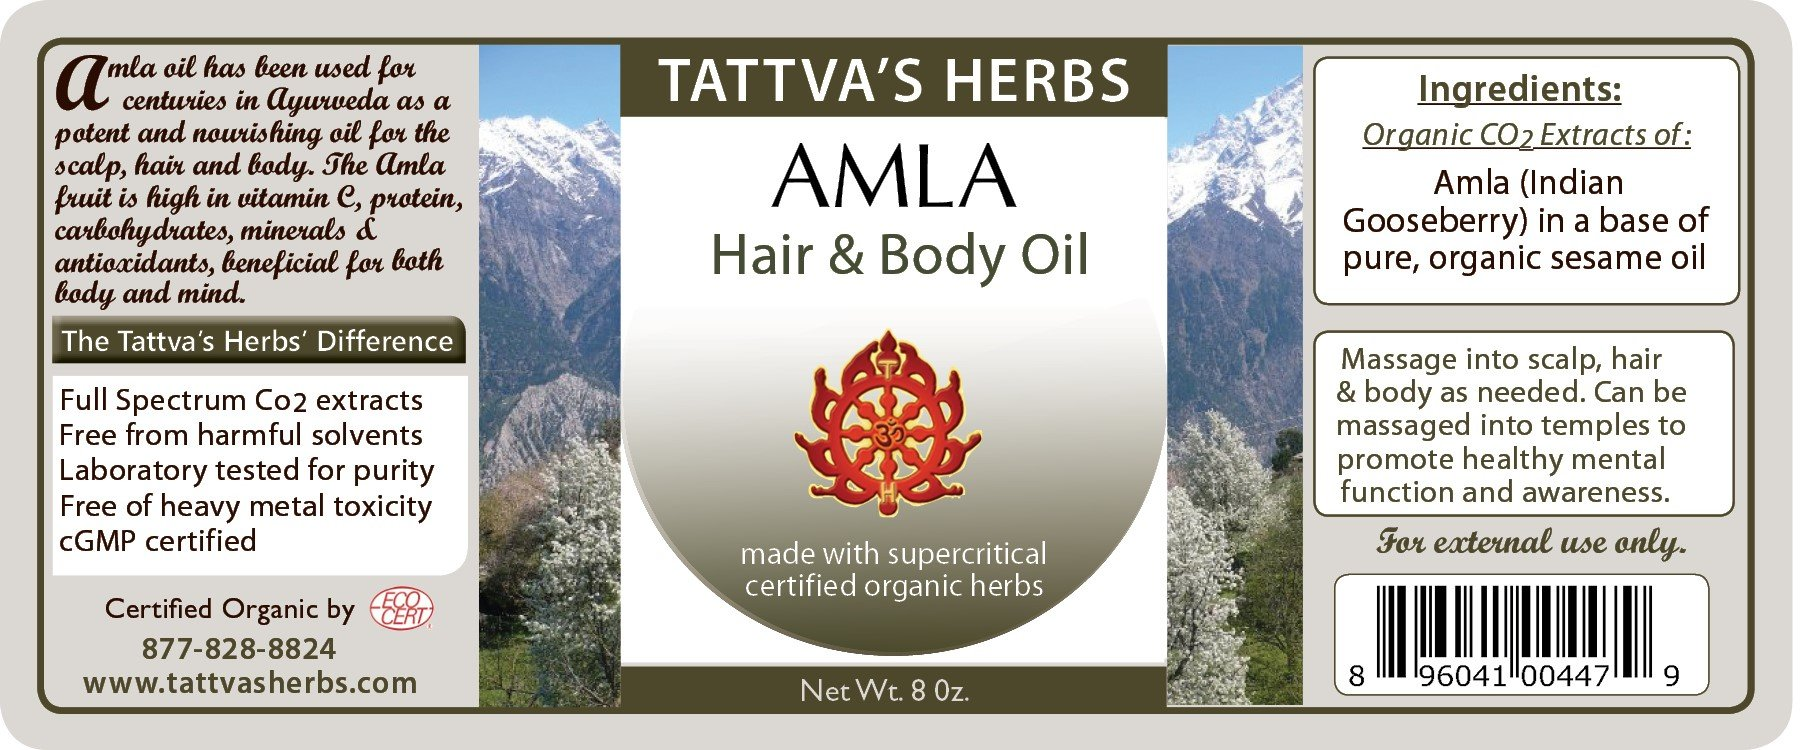 Tattva's Herbs Amla Hair Oil, Strengthens Hair Follicles, Prevents Hair Loss, Hair Growth Serum, Reduces Split Ends, Repairs Frizzy Hair, Excellent Conditioner, Relieves Itchiness, 8 oz.